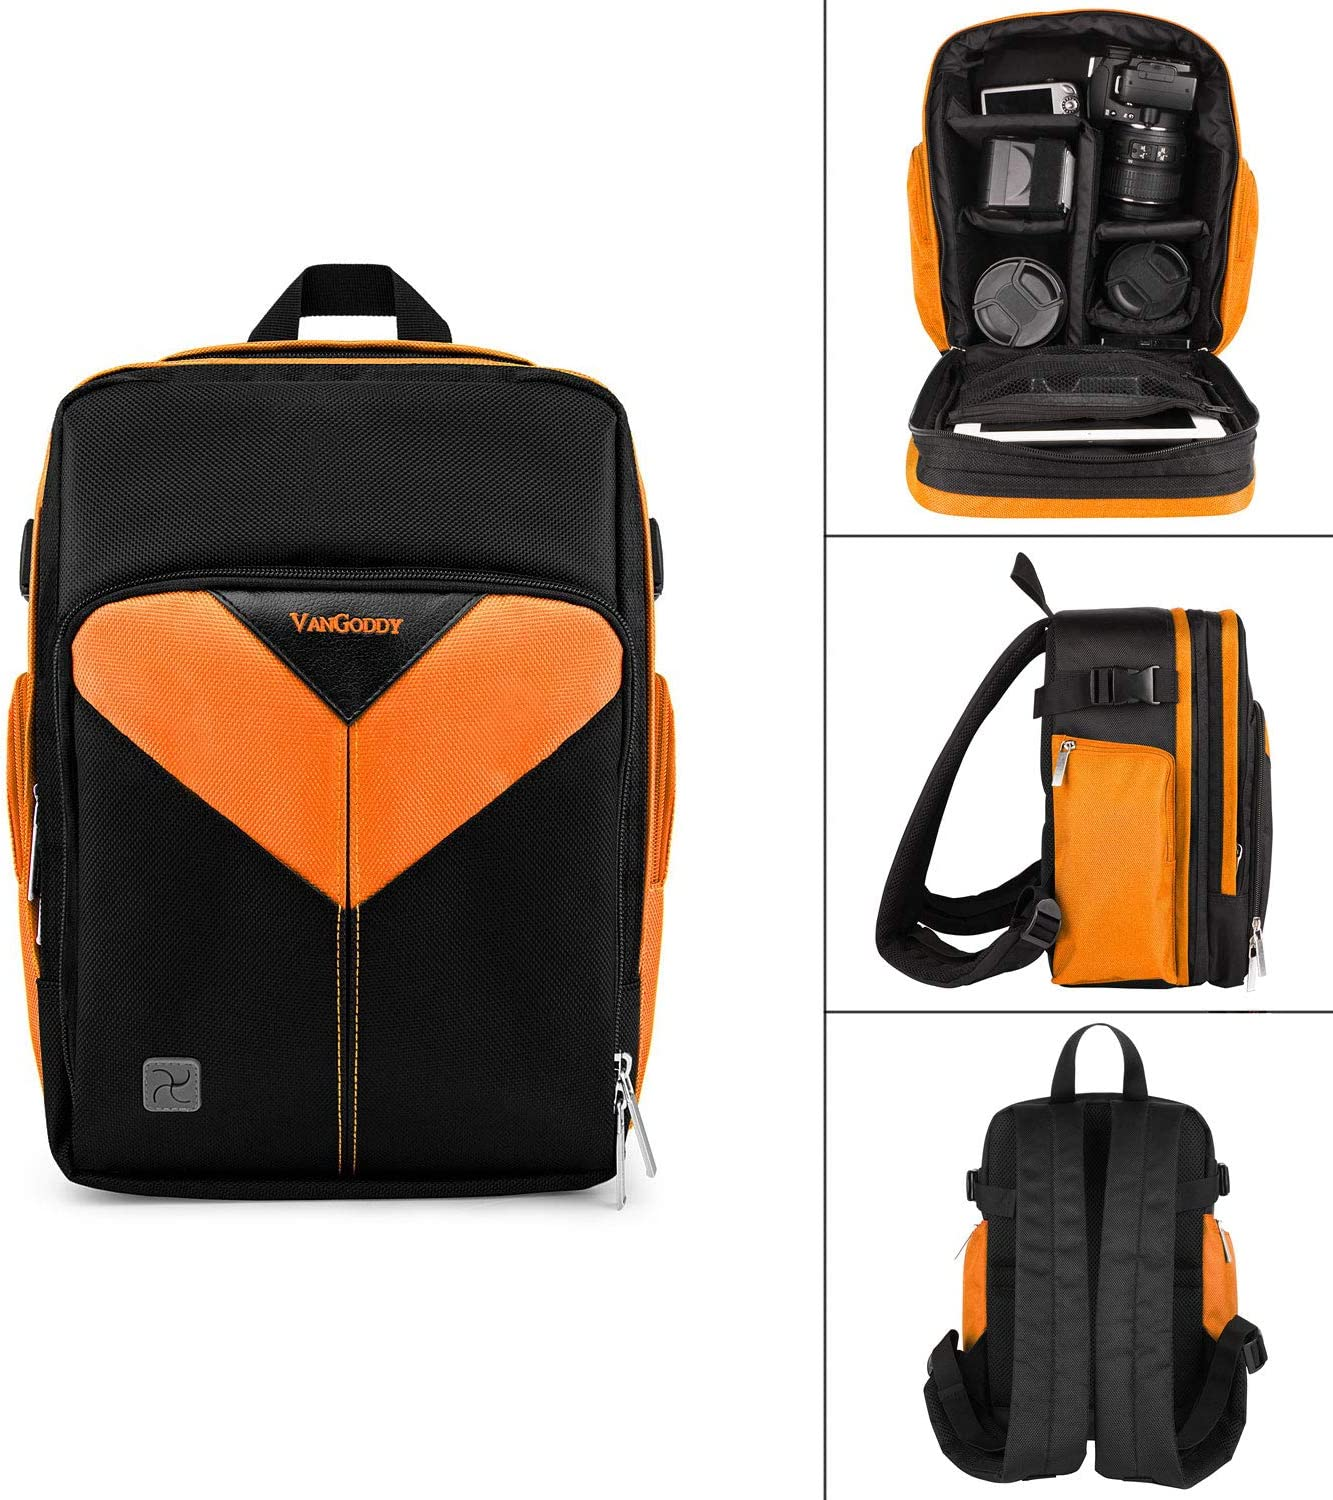 Accessories Roxie Professional Camera Case Sling Backpack for Nikon Canon Sony and More DSLR Cameras and Lens Durable Waterproof and Tear Proof Bag with Padded Dividers